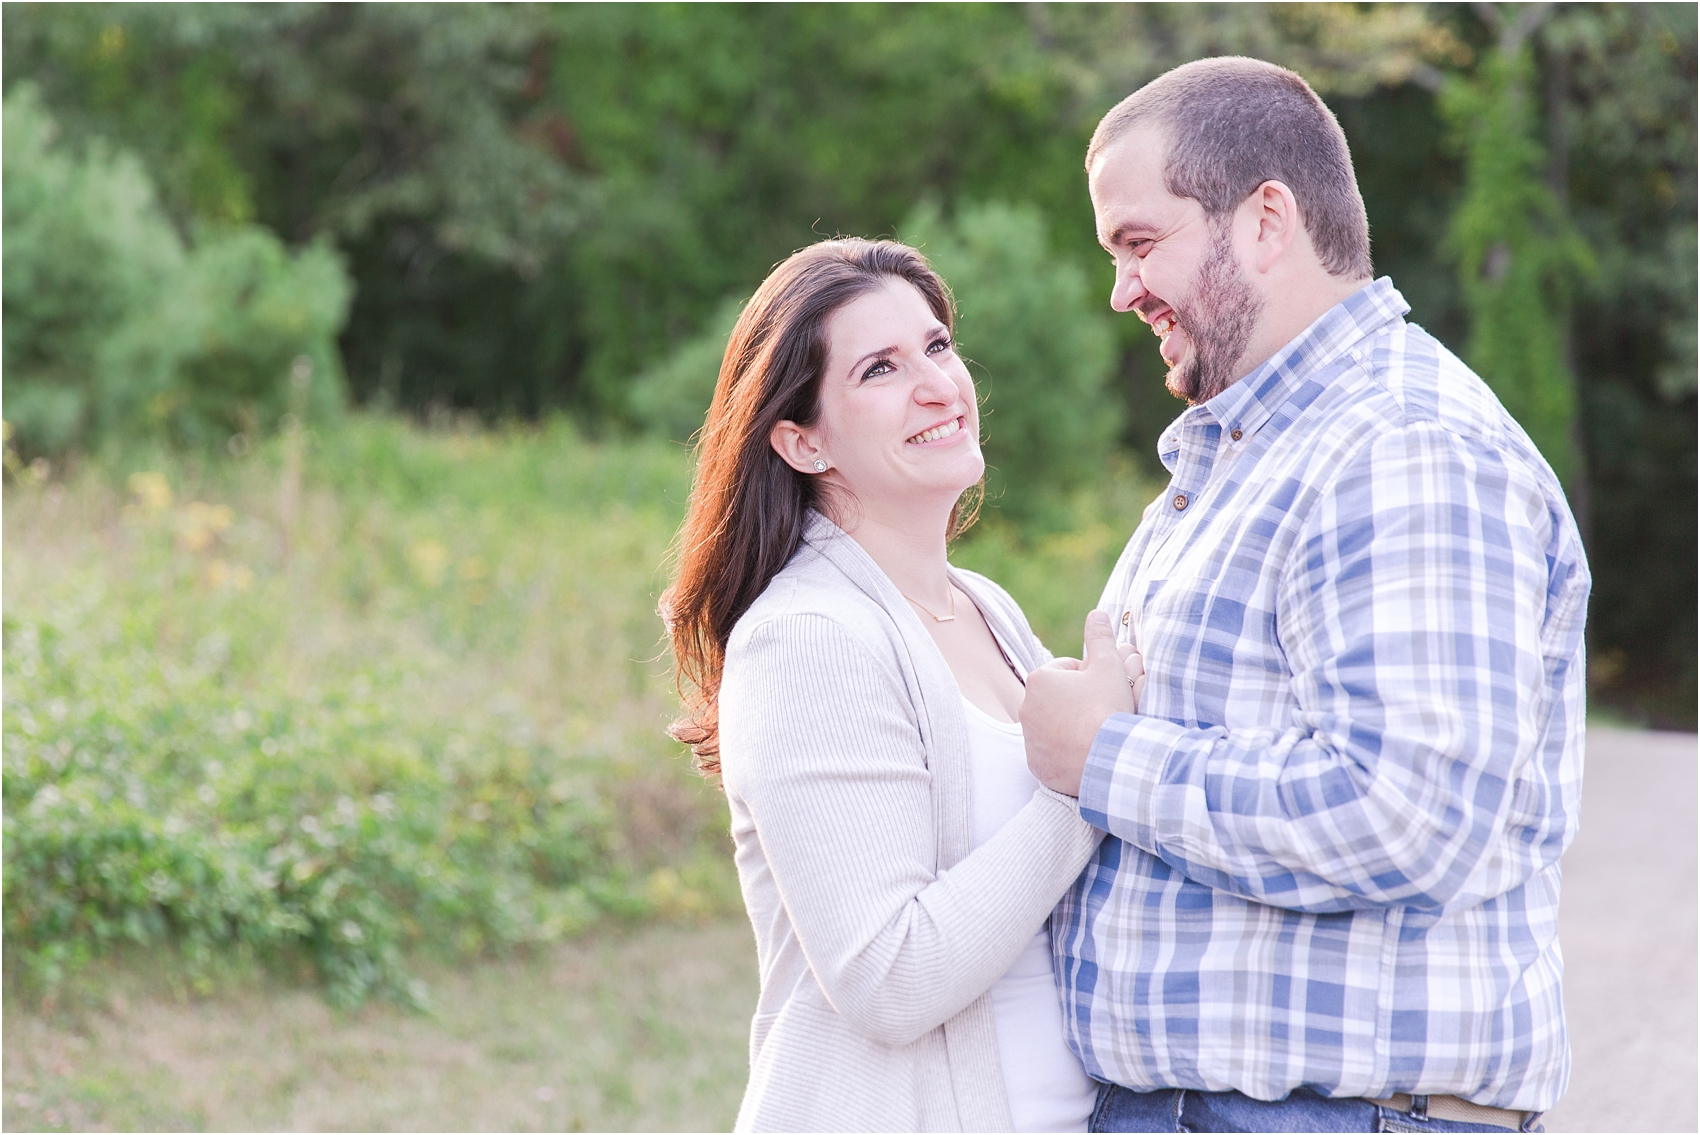 candid-romantic-summer-engagement-photos-at-hidden-lake-gardens-and-black-fire-winery-in-tipton-mi-by-courtney-carolyn-photography_0036.jpg